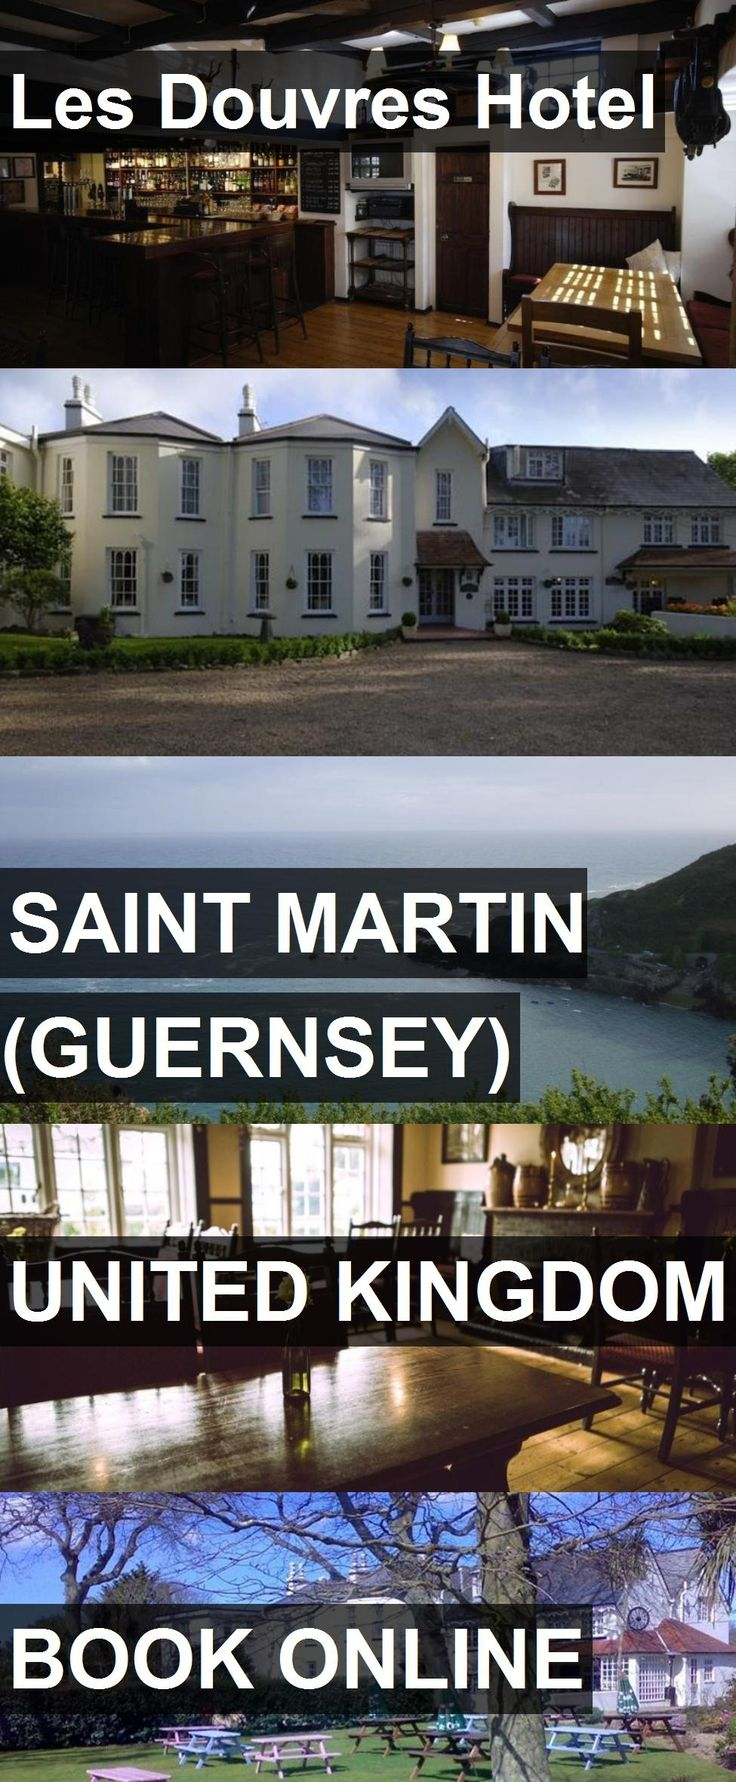 Hotel Les Douvres Hotel in Saint Martin (Guernsey), United Kingdom. For more information, photos, reviews and best prices please follow the link. #UnitedKingdom #SaintMartin(Guernsey) #LesDouvresHotel #hotel #travel #vacation